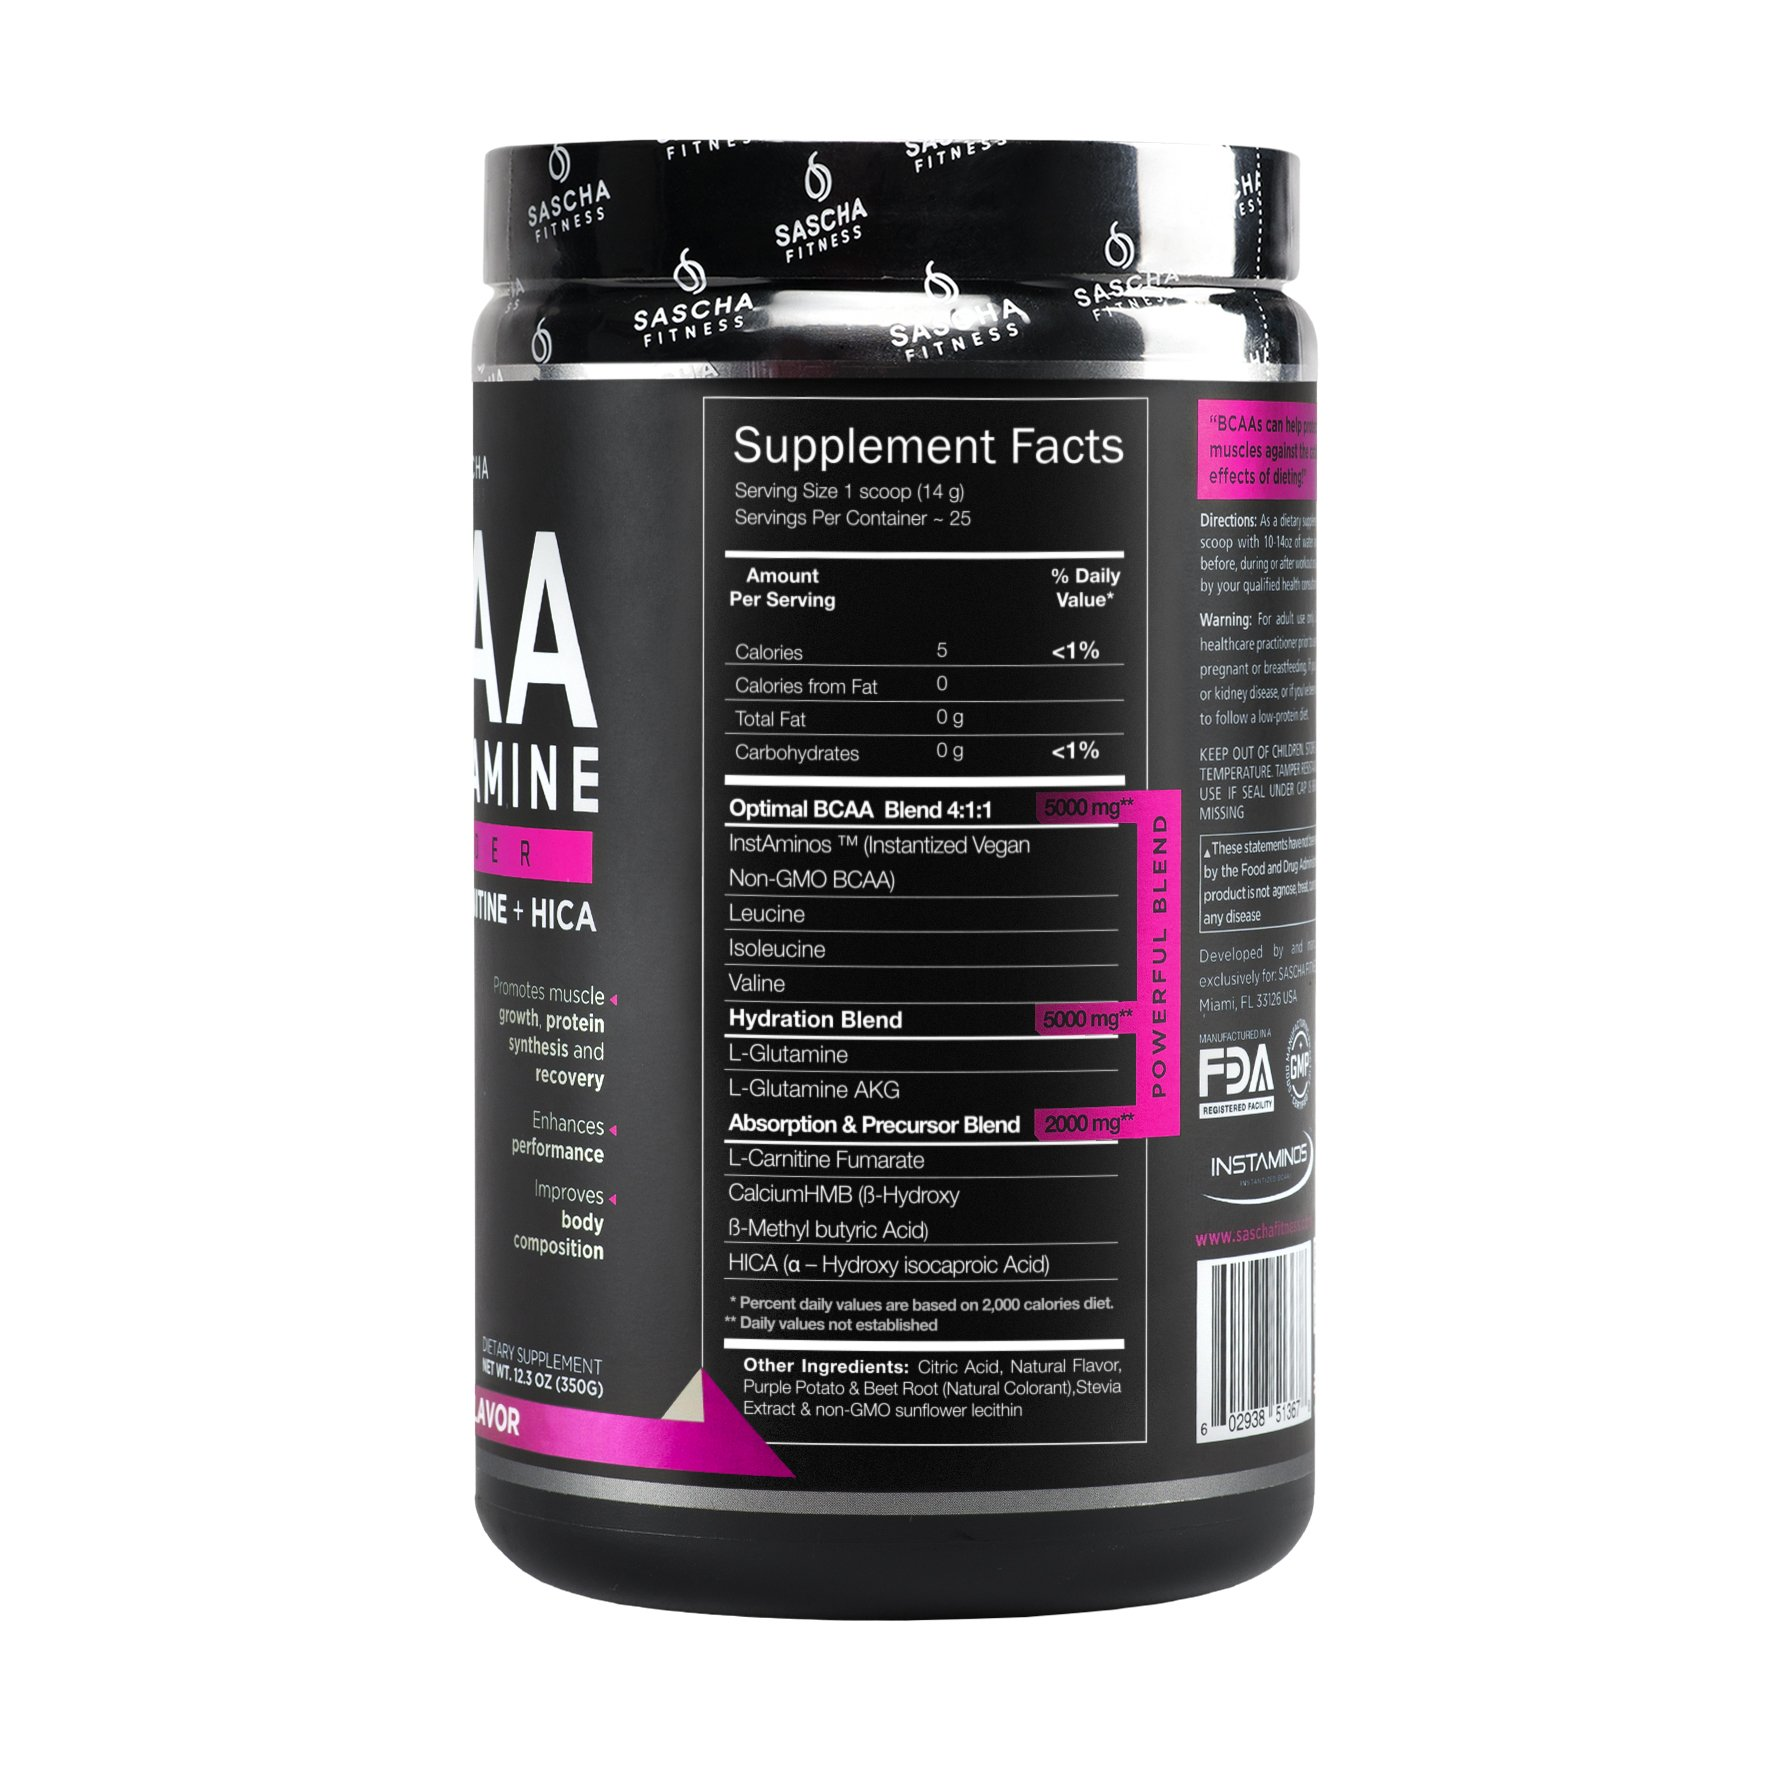 Sascha Fitness BCAA 4:1:1 + Glutamine, HMB, L-Carnitine, HICA | Powerful and Instant Powder Blend with Branched Chain Amino Acids (BCAAs) for Pre, Intra and Post-Workout | Natural Grape Flavor, 350g by SASCHA FITNESS (Image #6)